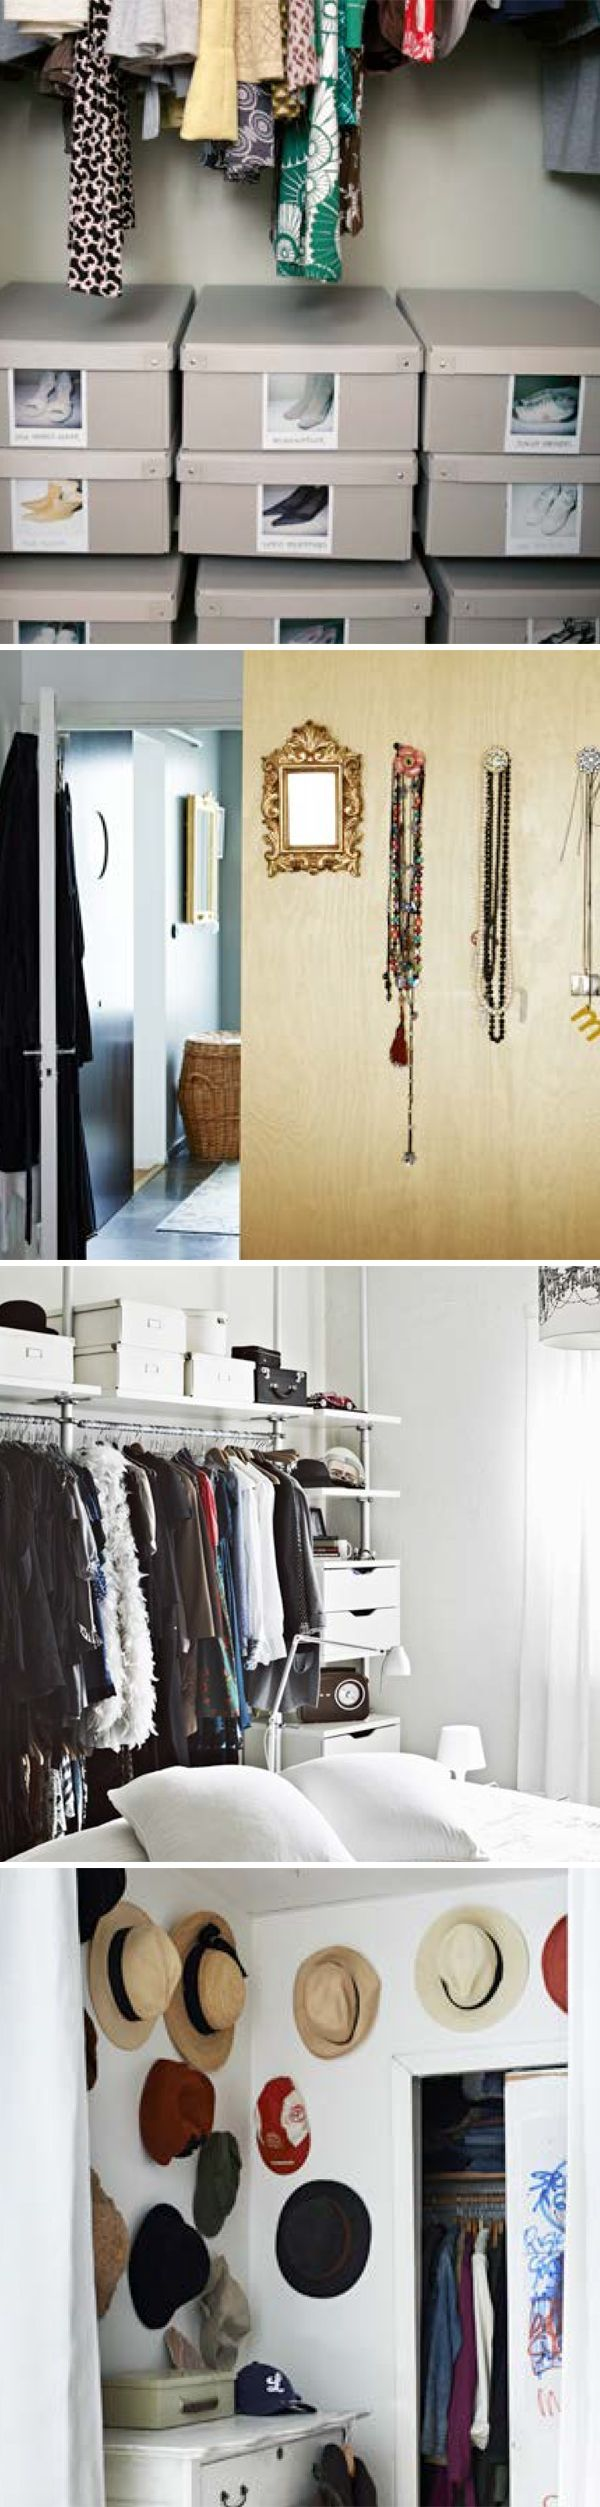 On Style Today 2020 10 08 Charming Ikea Bathroom Storage Solution Here